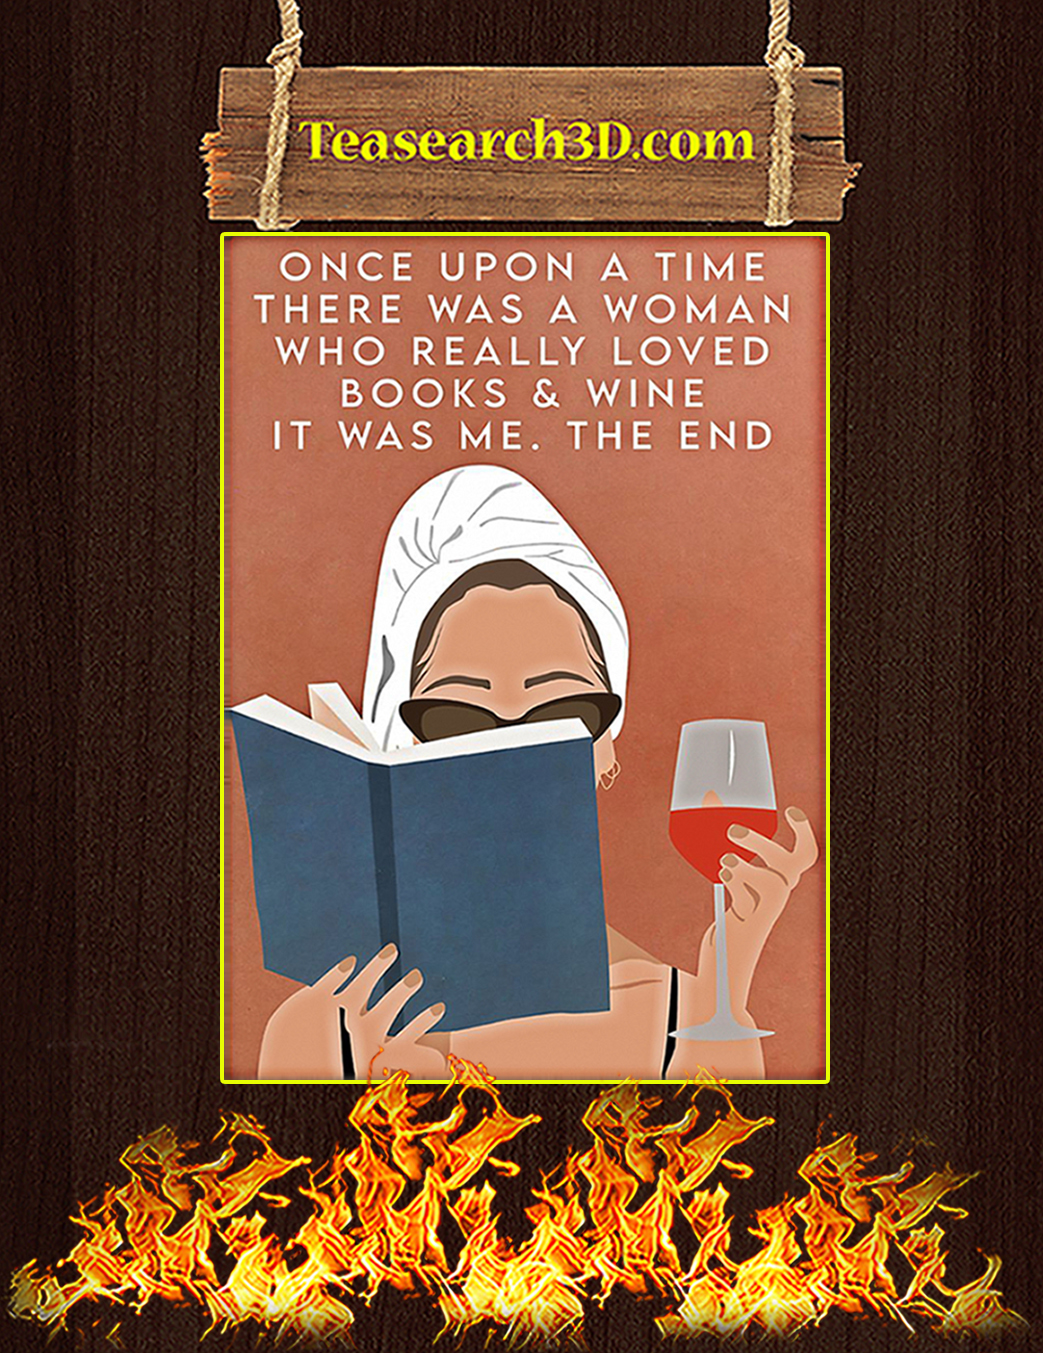 Once upon a time there was a woman who really loved books and wine poster A1